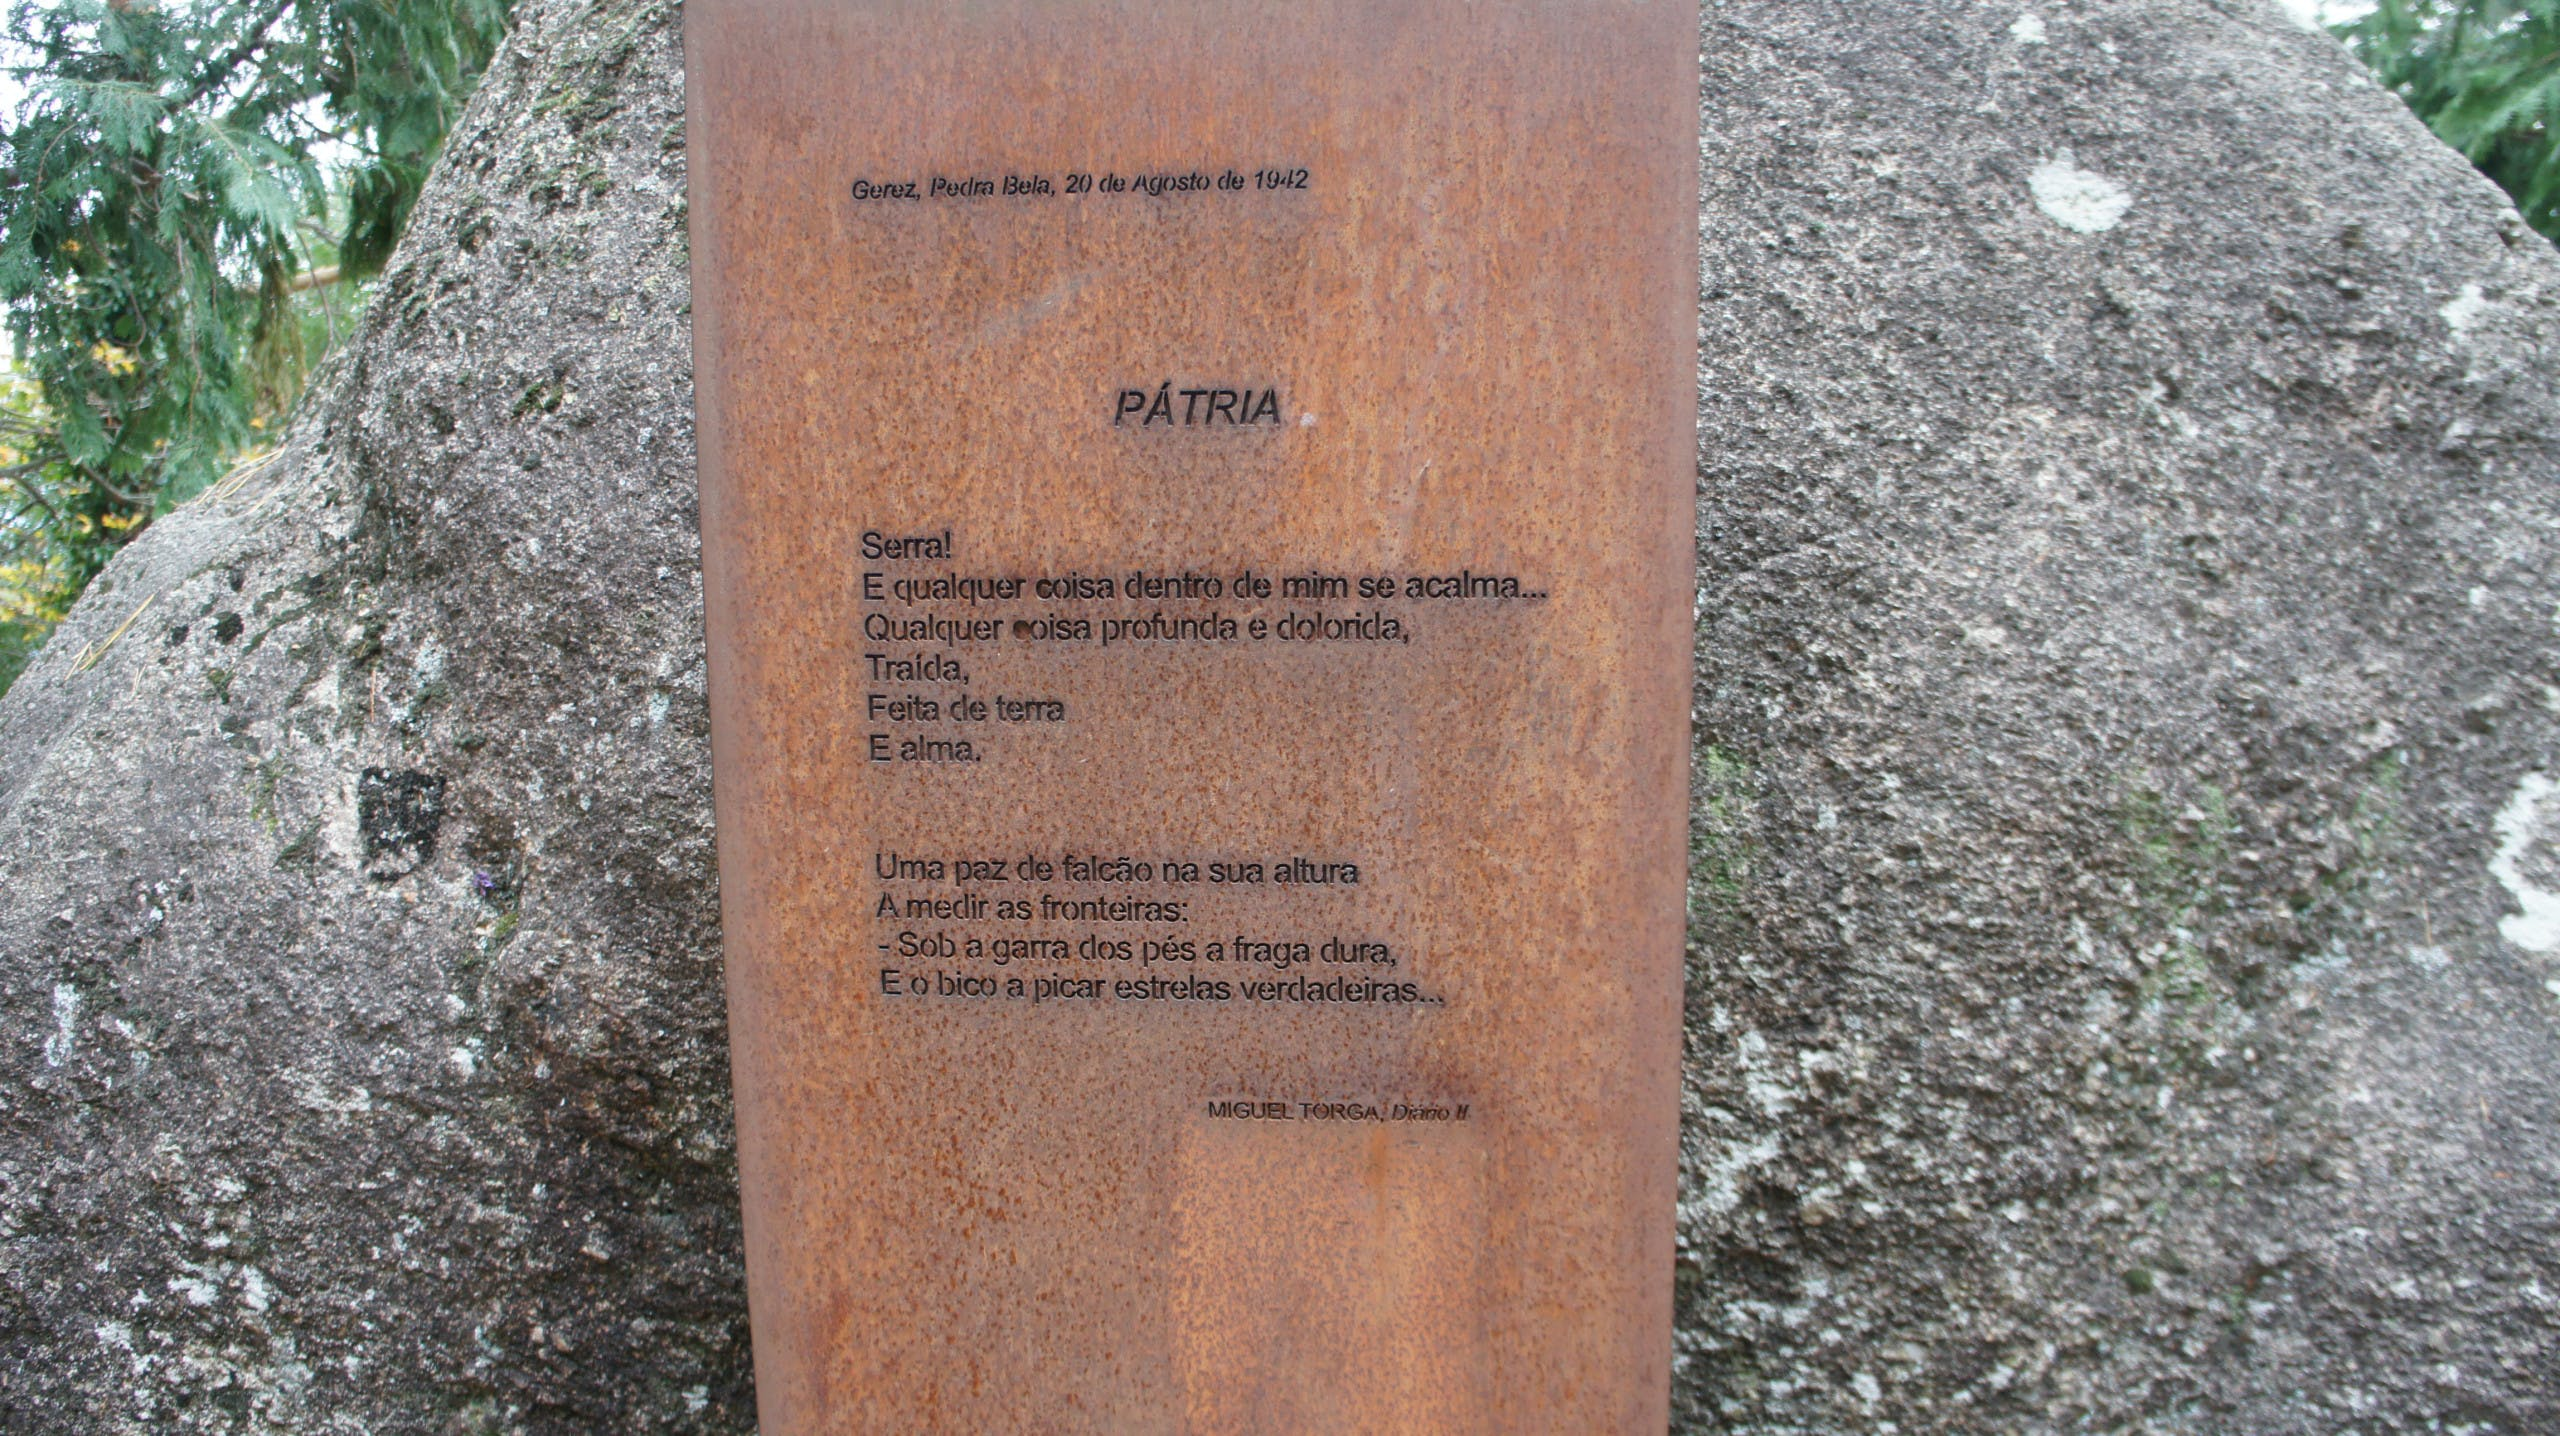 Text by Miguel Torga in Pedra Bela